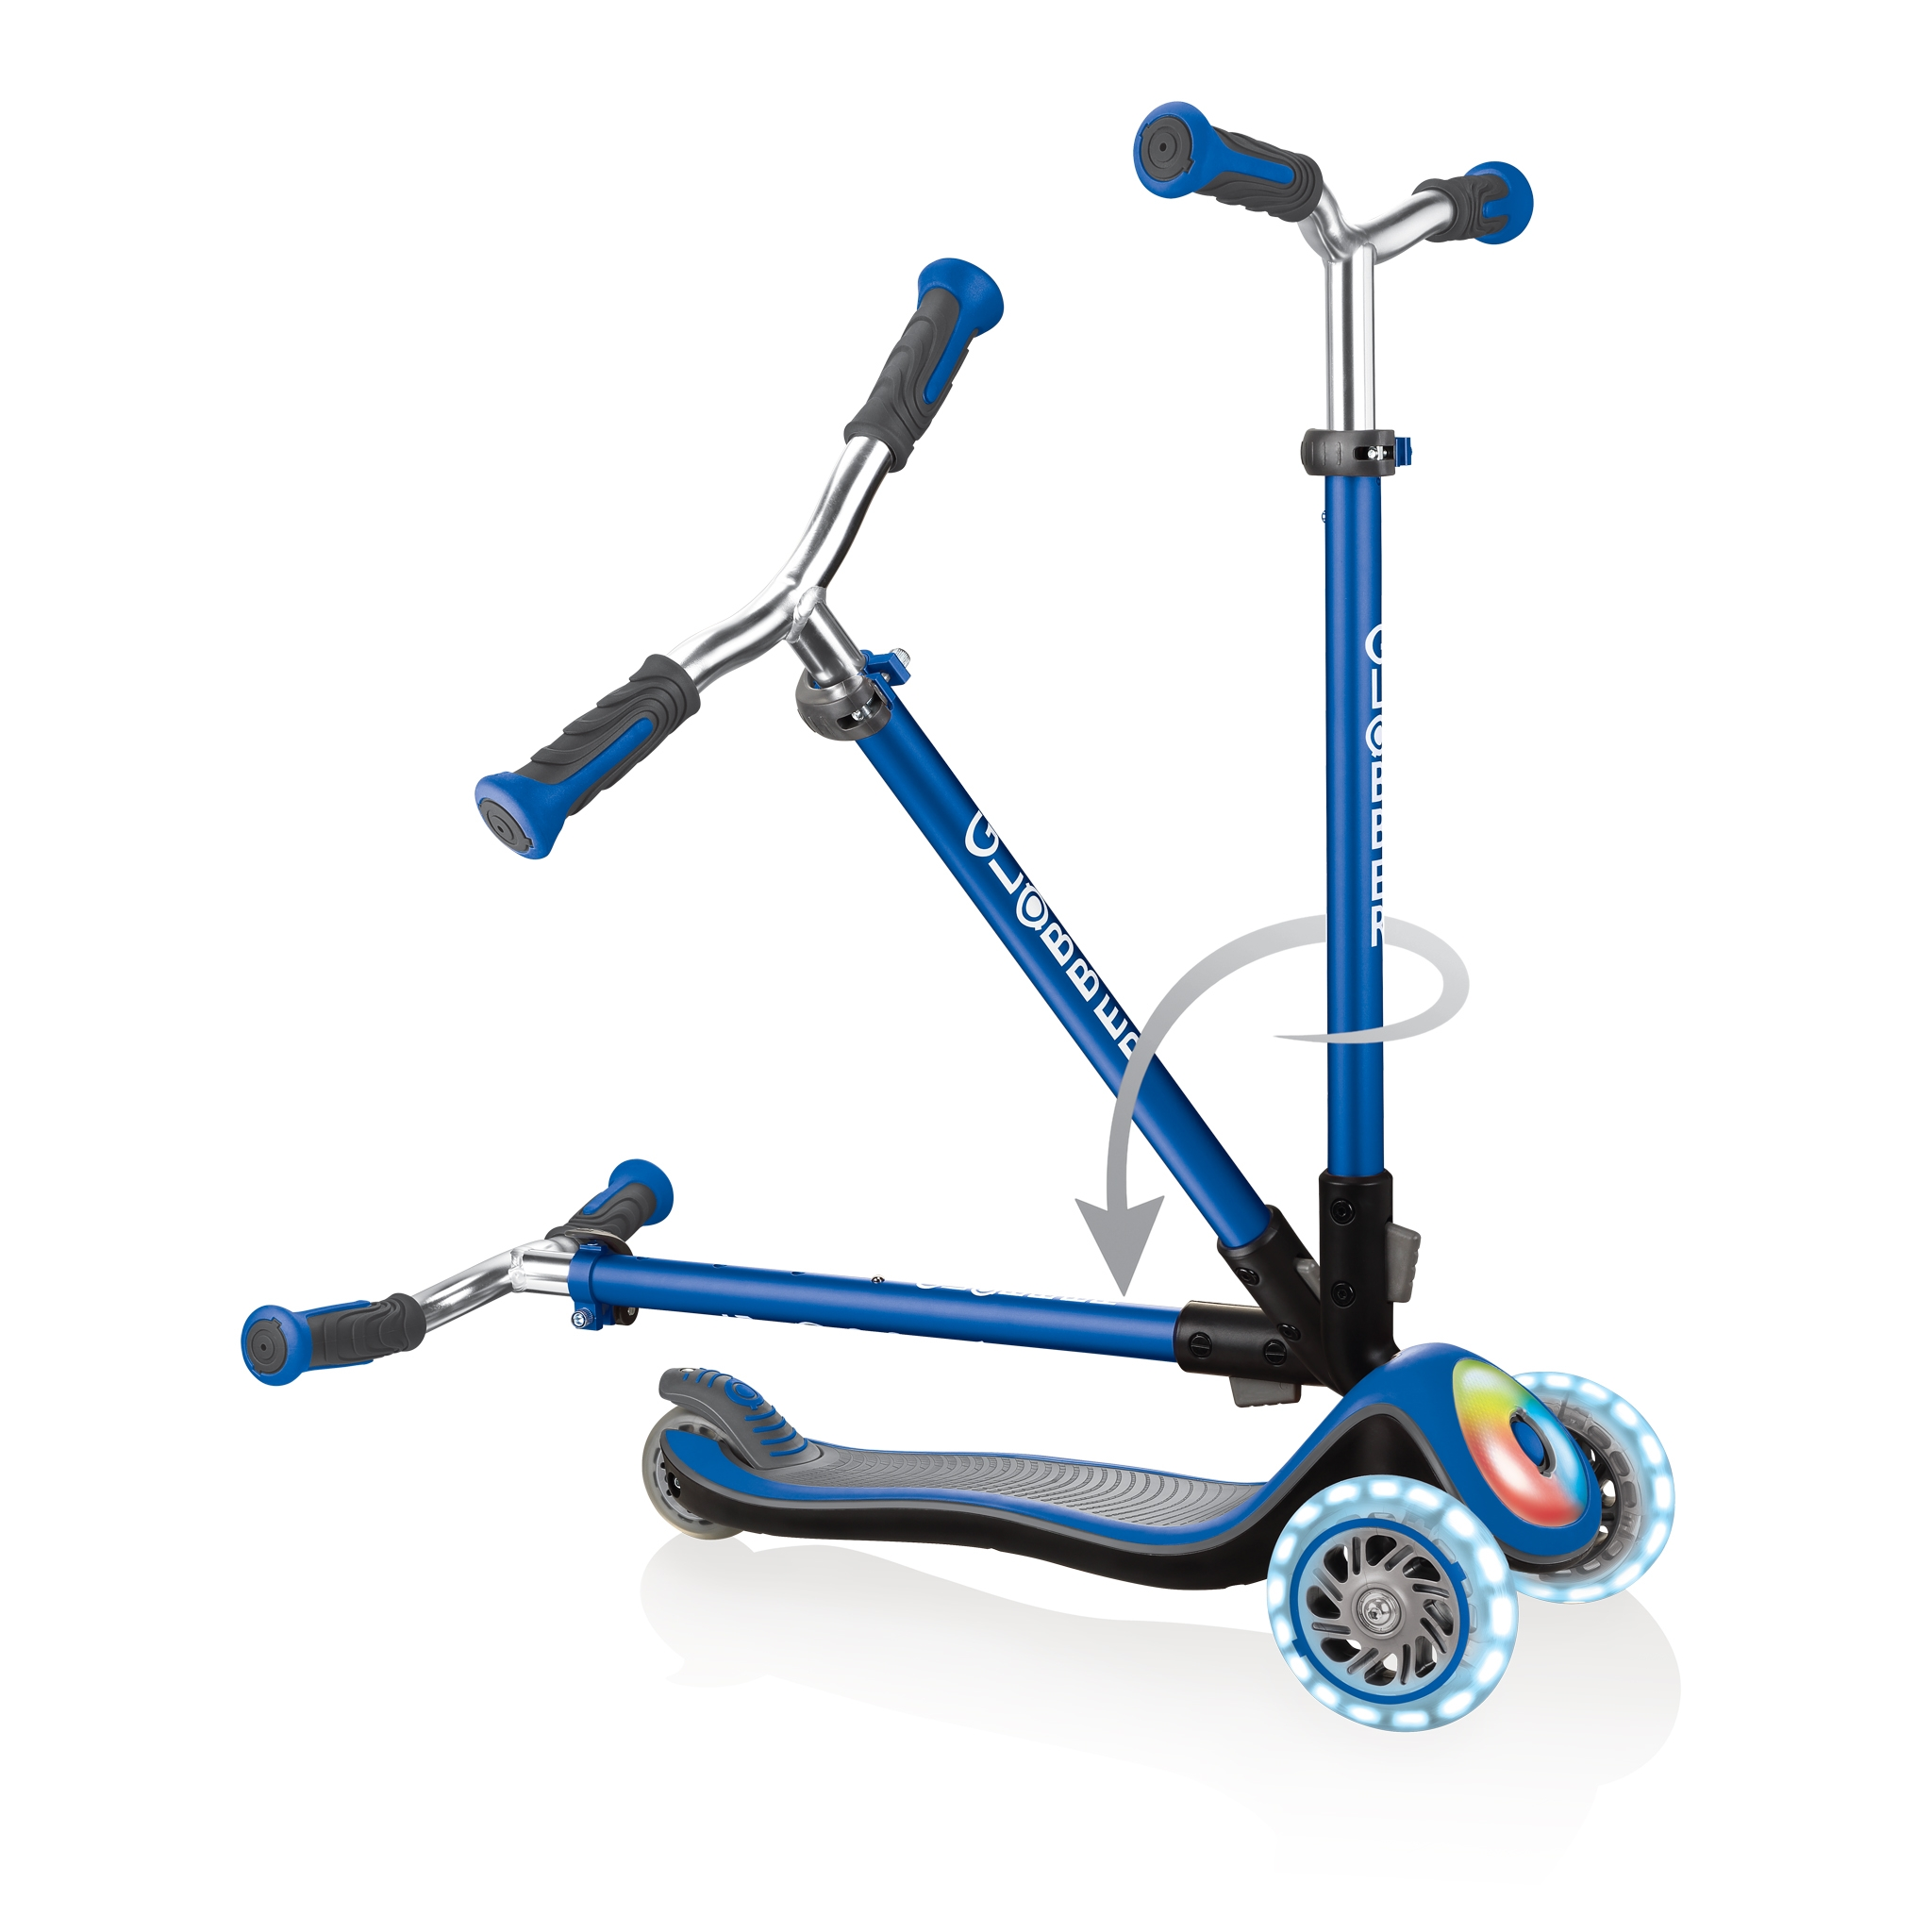 Globber-ELITE-PRIME-best-3-wheel-scooter-for-kids-with-patented-folding-system-navy-blue